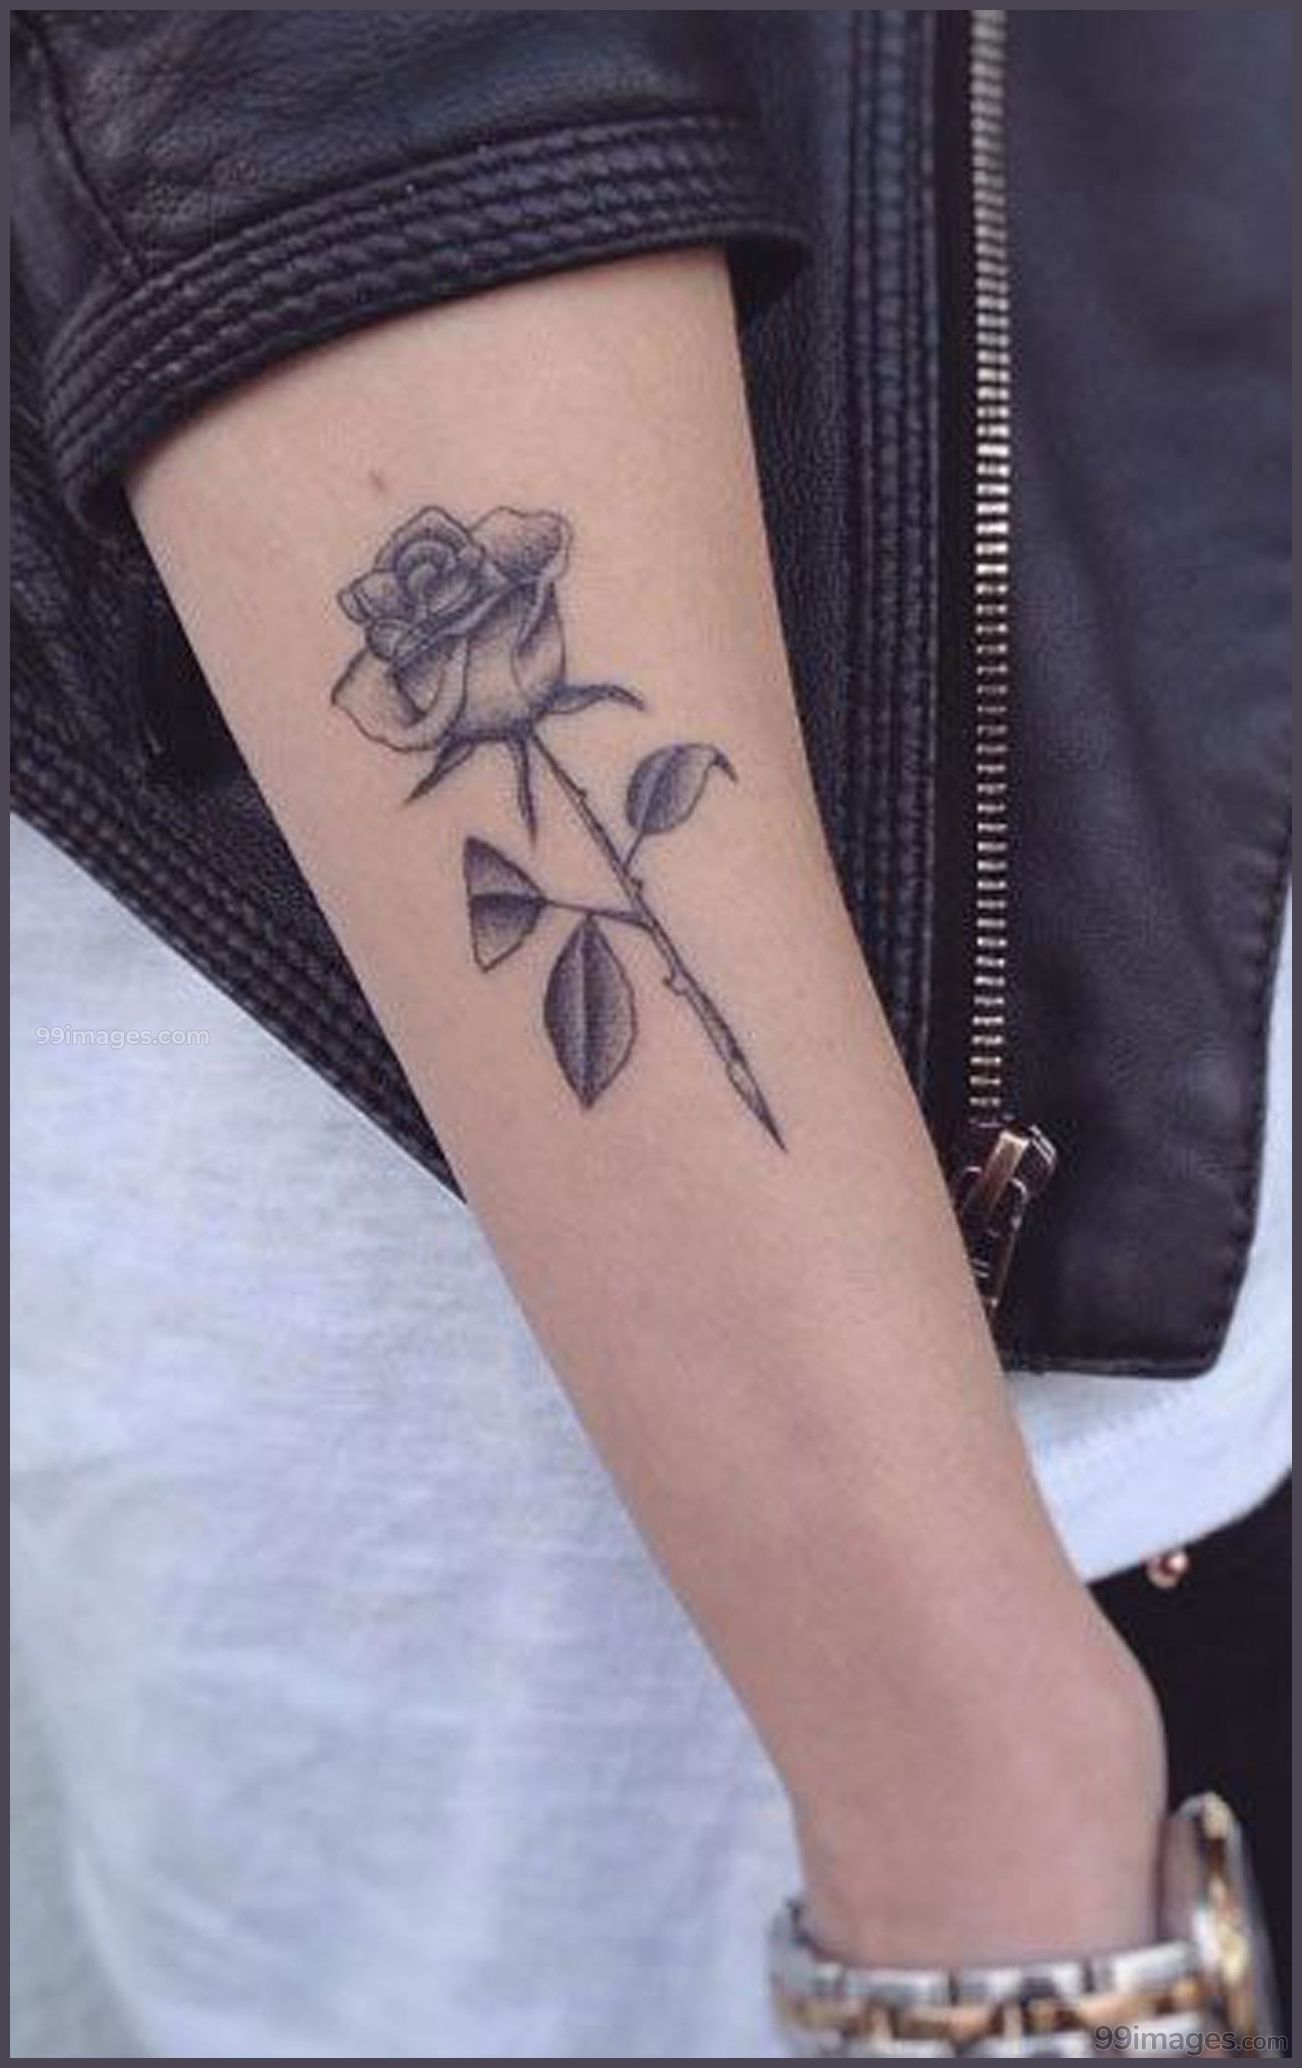 Pin by Lisa Redman on tattoos Outer forearm tattoo